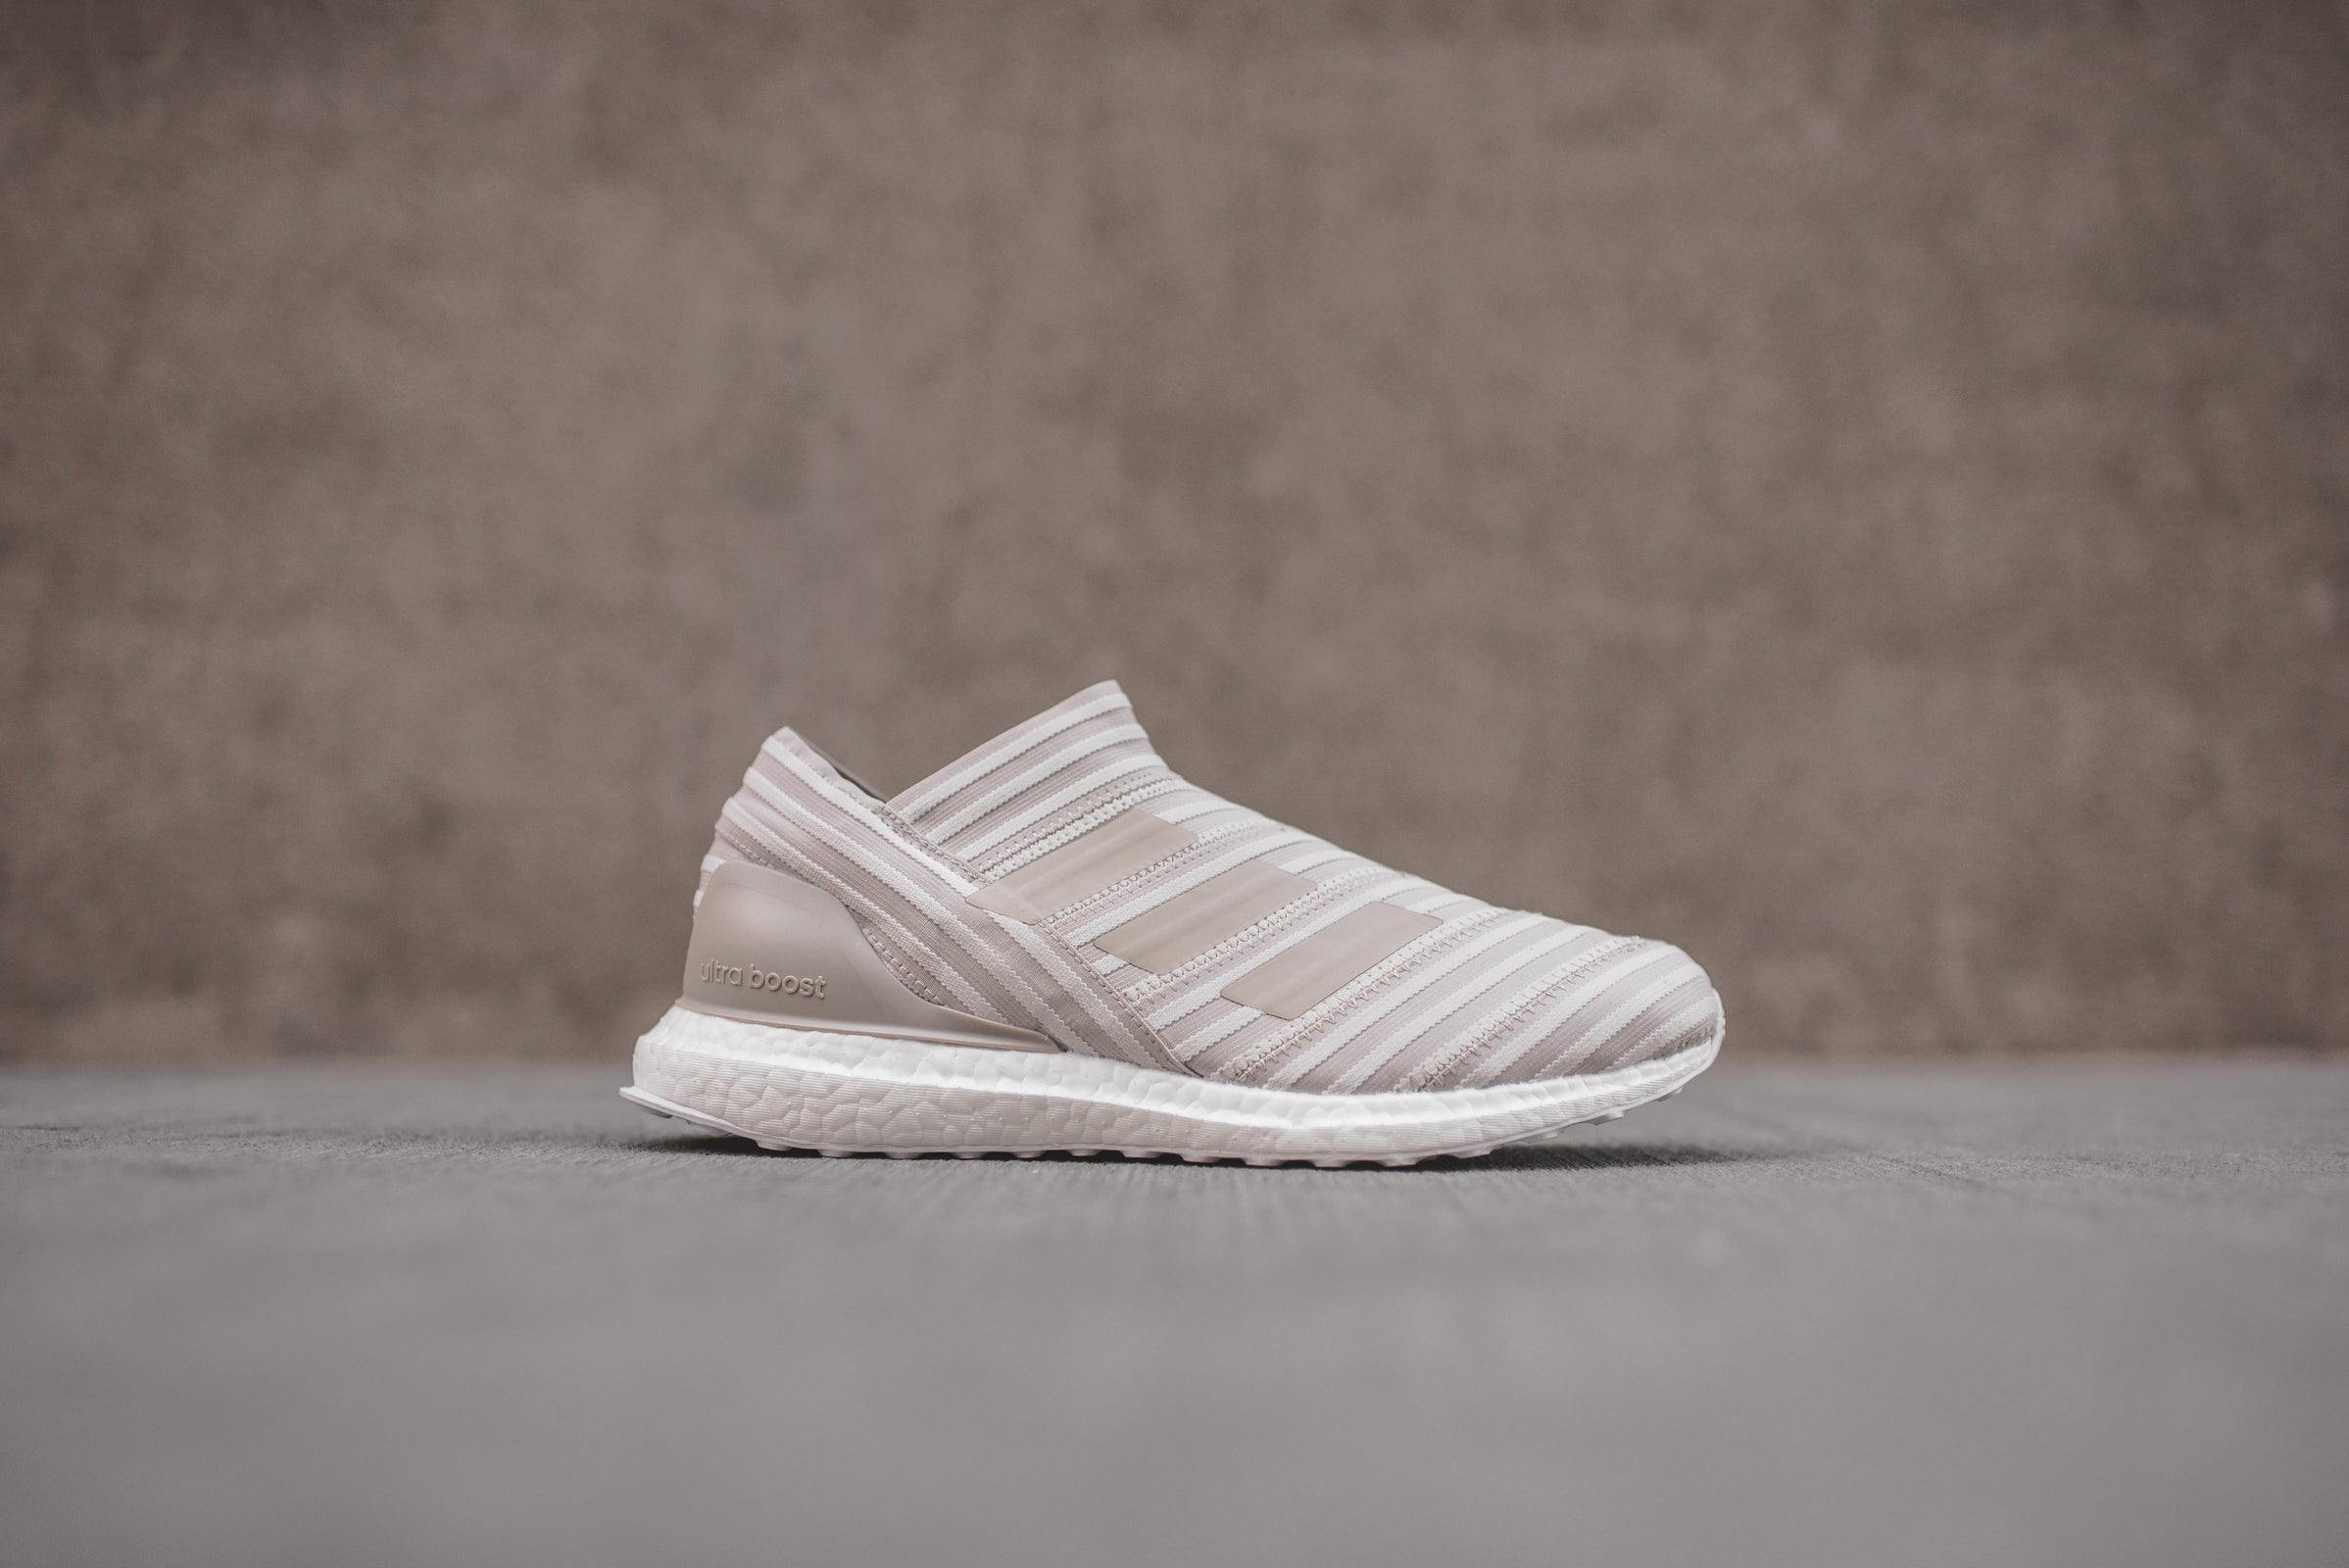 adidas Nemeziz Tango 17+ UltraBoost - Brown  White